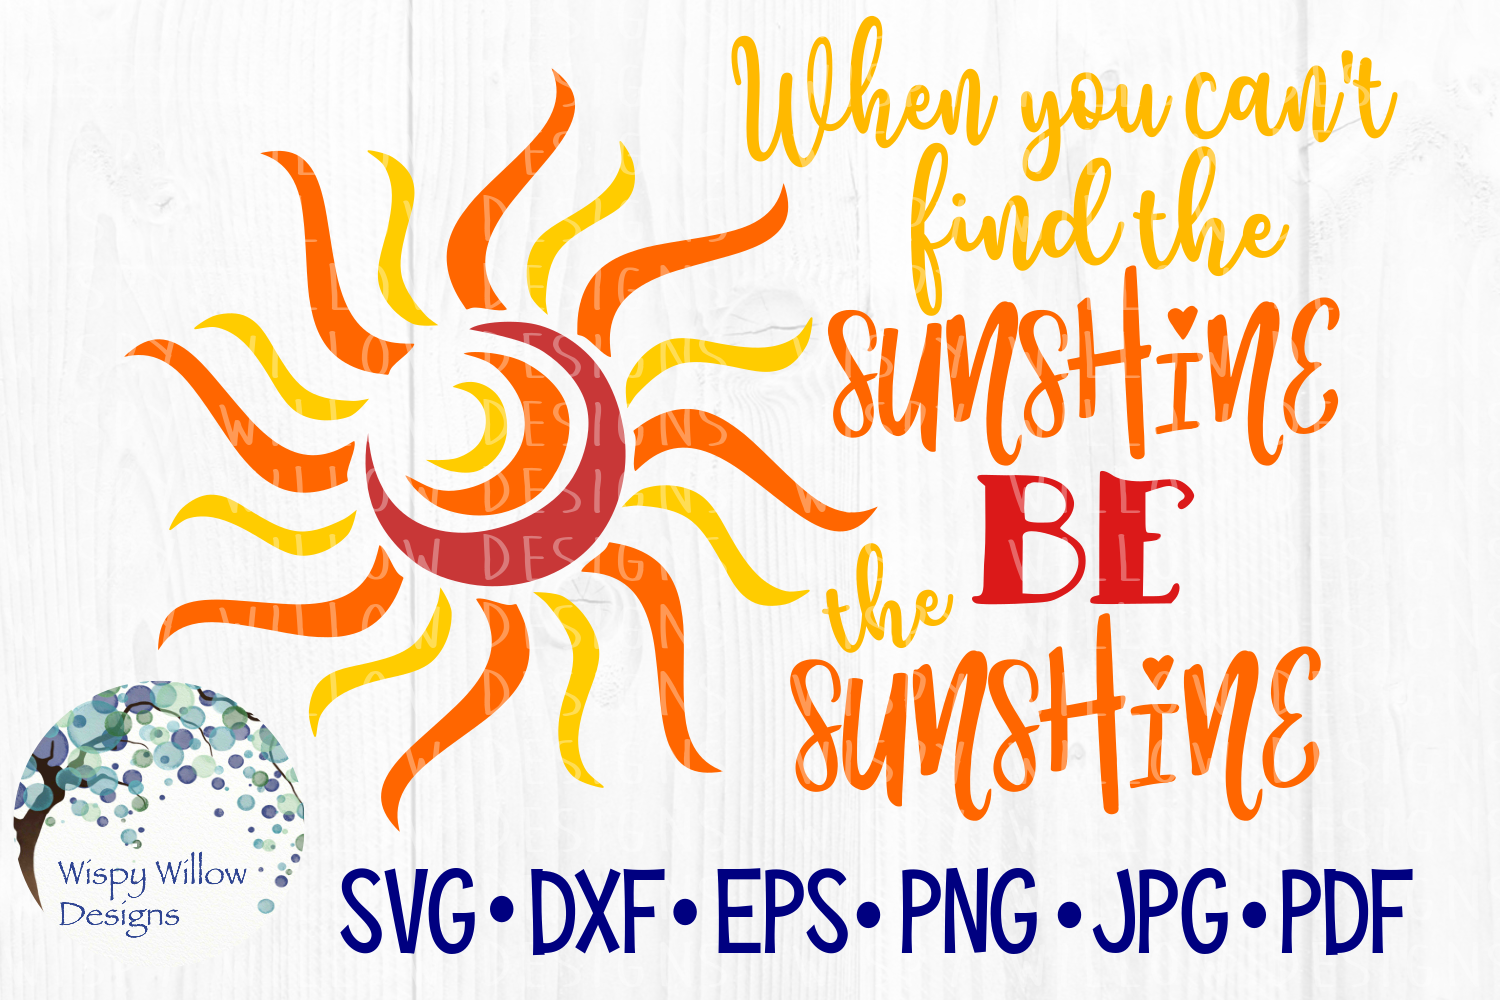 Download Free When You Can T Find The Sunshine Be The Sunshine Graphic By for Cricut Explore, Silhouette and other cutting machines.